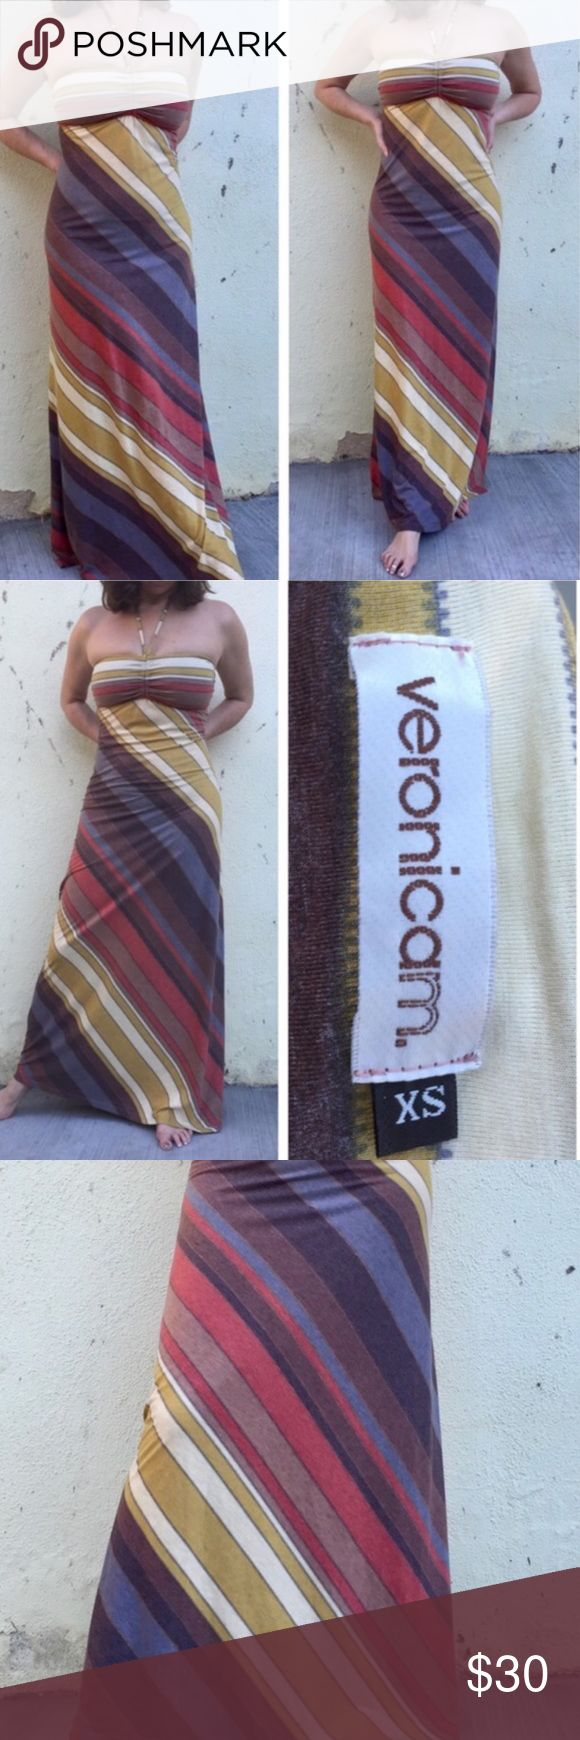 VeronicaM STRIPED vintage maxi DRESS Halter LONG By trend setting designer Veronica M comes this beautiful striped print. with flattering lines and architectural hues this comfortable and striking extra long maxi dress is rayon and spandex. Sz Xs which would also fit a Small.  bodice has a strong hold - no bra required. With attached halter string. (J1) veronicaM Dresses Maxi